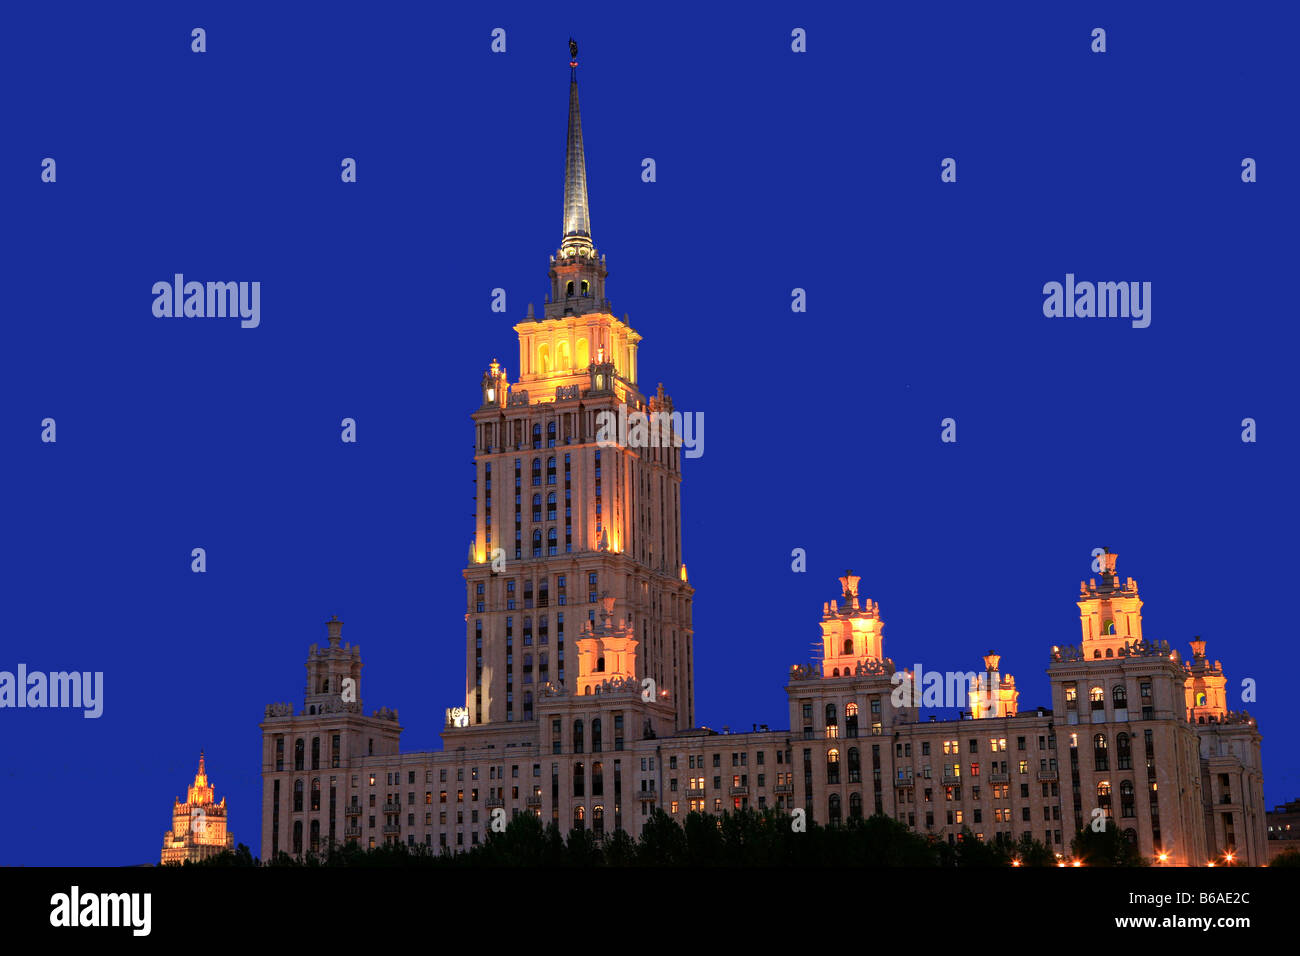 Hotel Ukraina, one of Stalin's Seven Sisters in Moscow, Russia Stock Photo